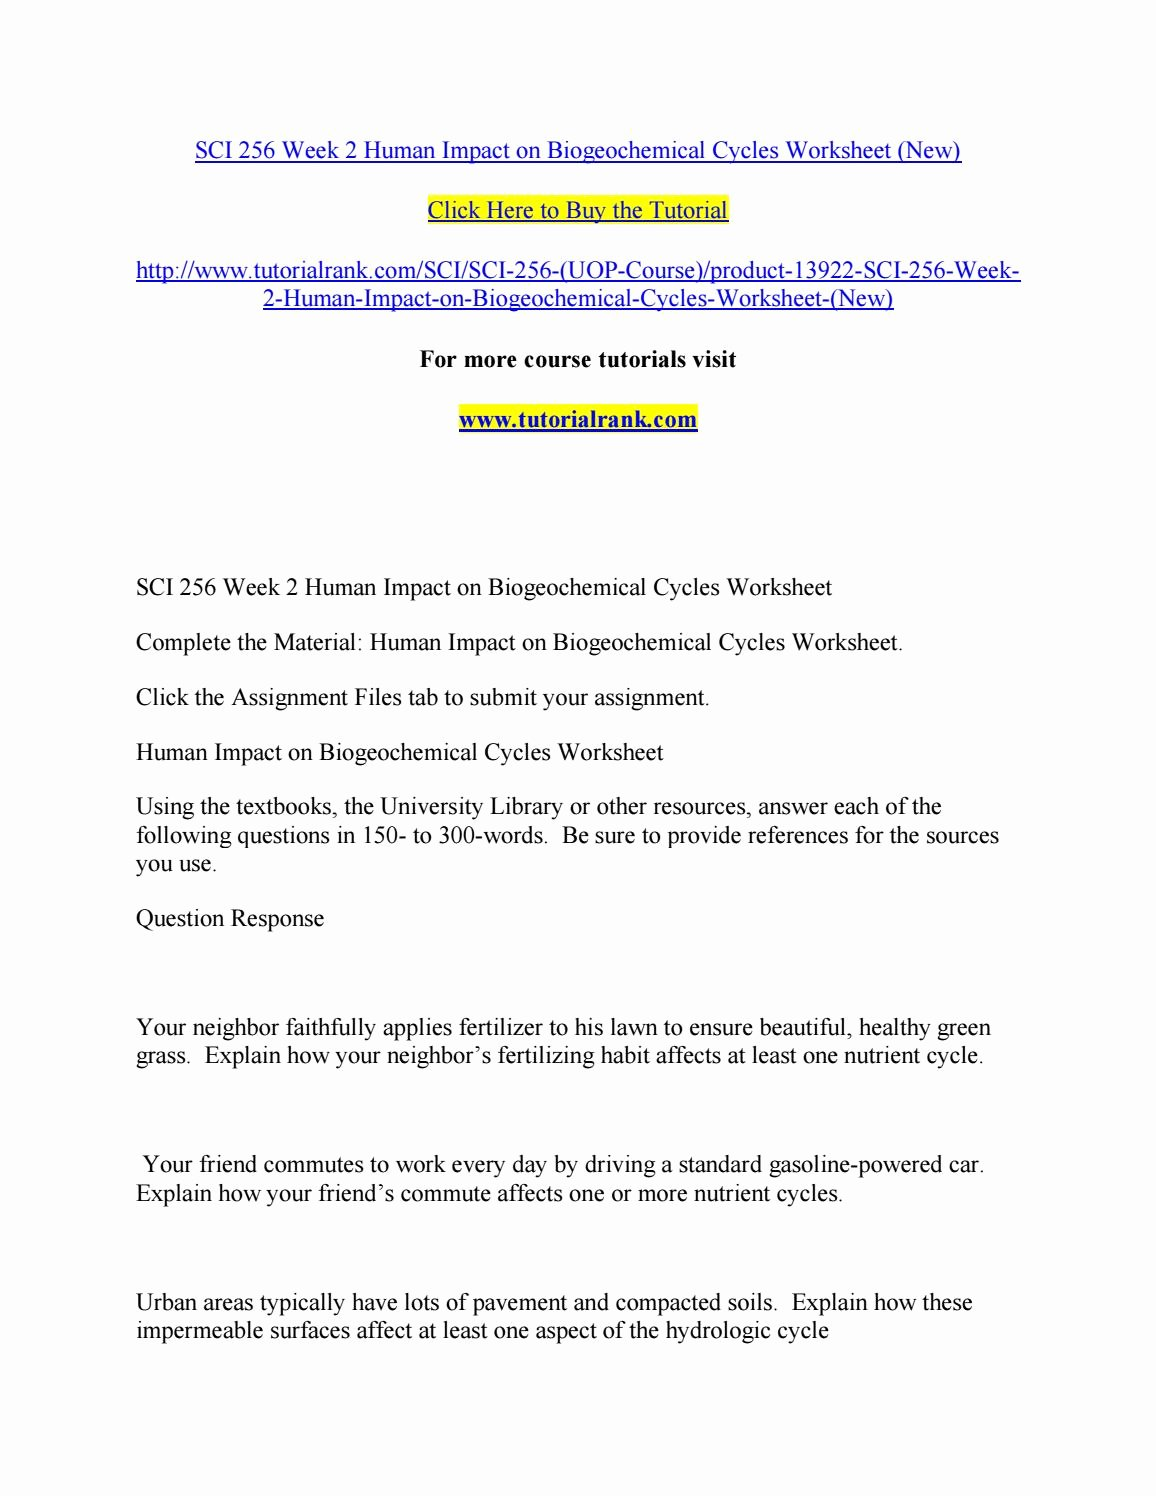 Biogeochemical Cycles Worksheet Answers New Sci 256 Week 2 Human Impact On Biogeochemical Cycles